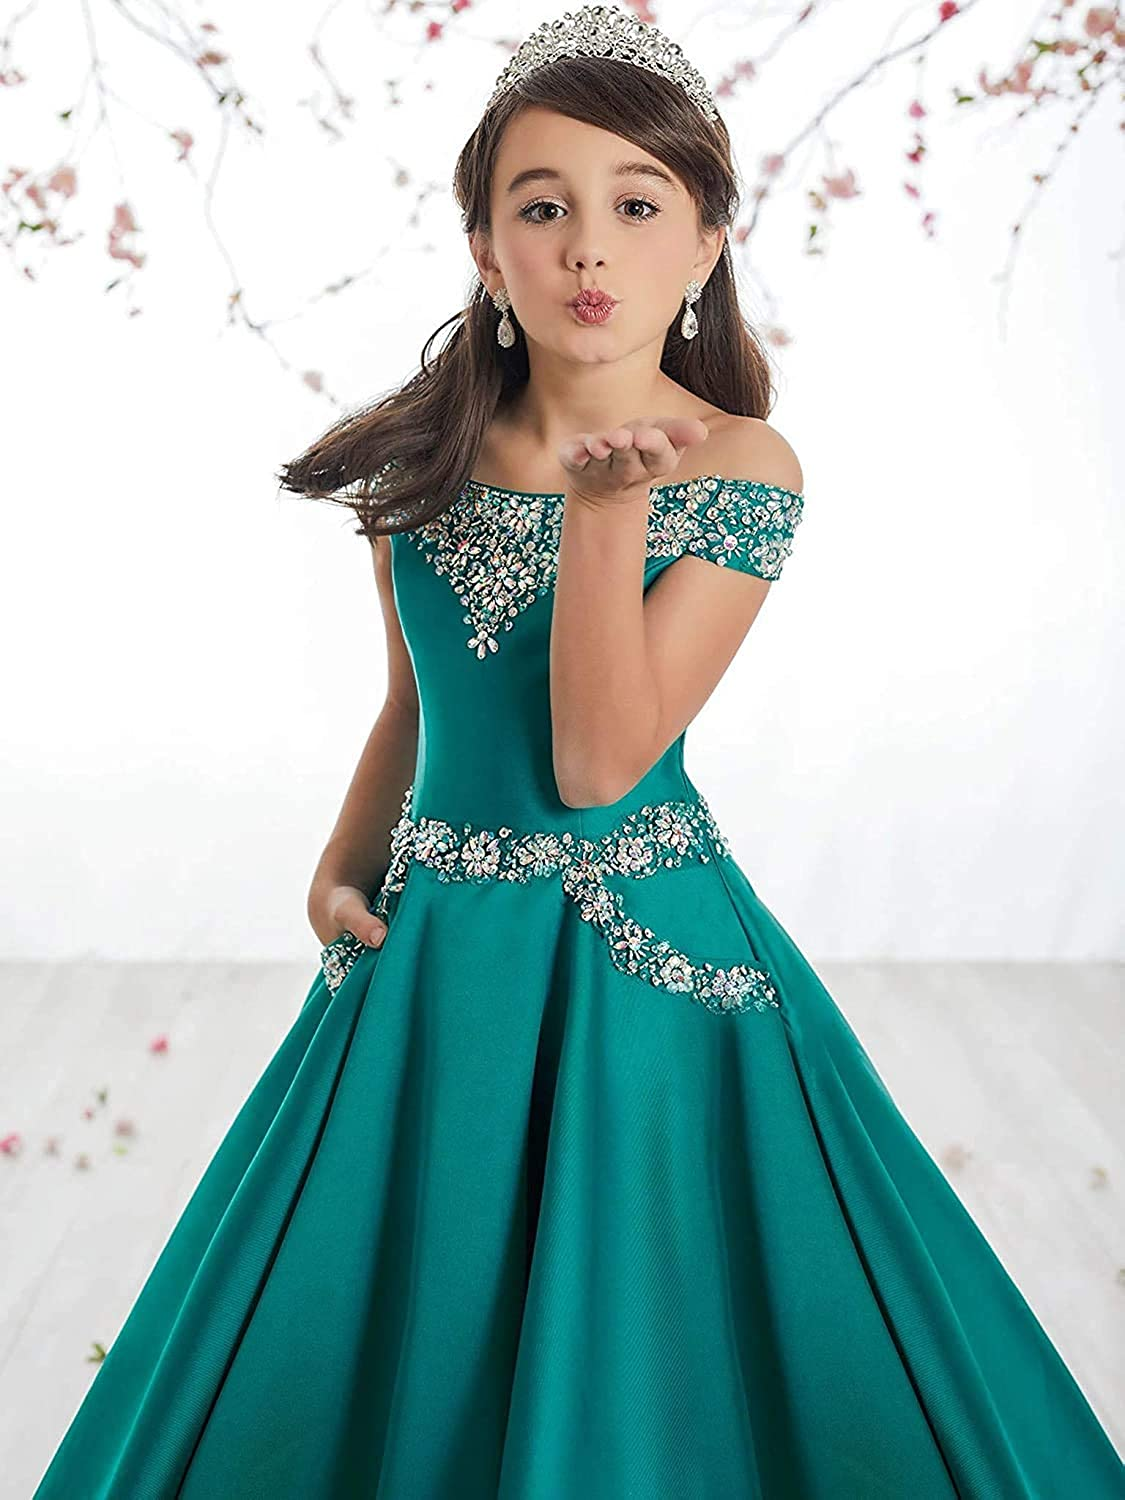 Houganhe Girls Pageant Dresses Satin Kids Prom Ball Gown Crystal Beaded Flower Girl Dress with Pockets